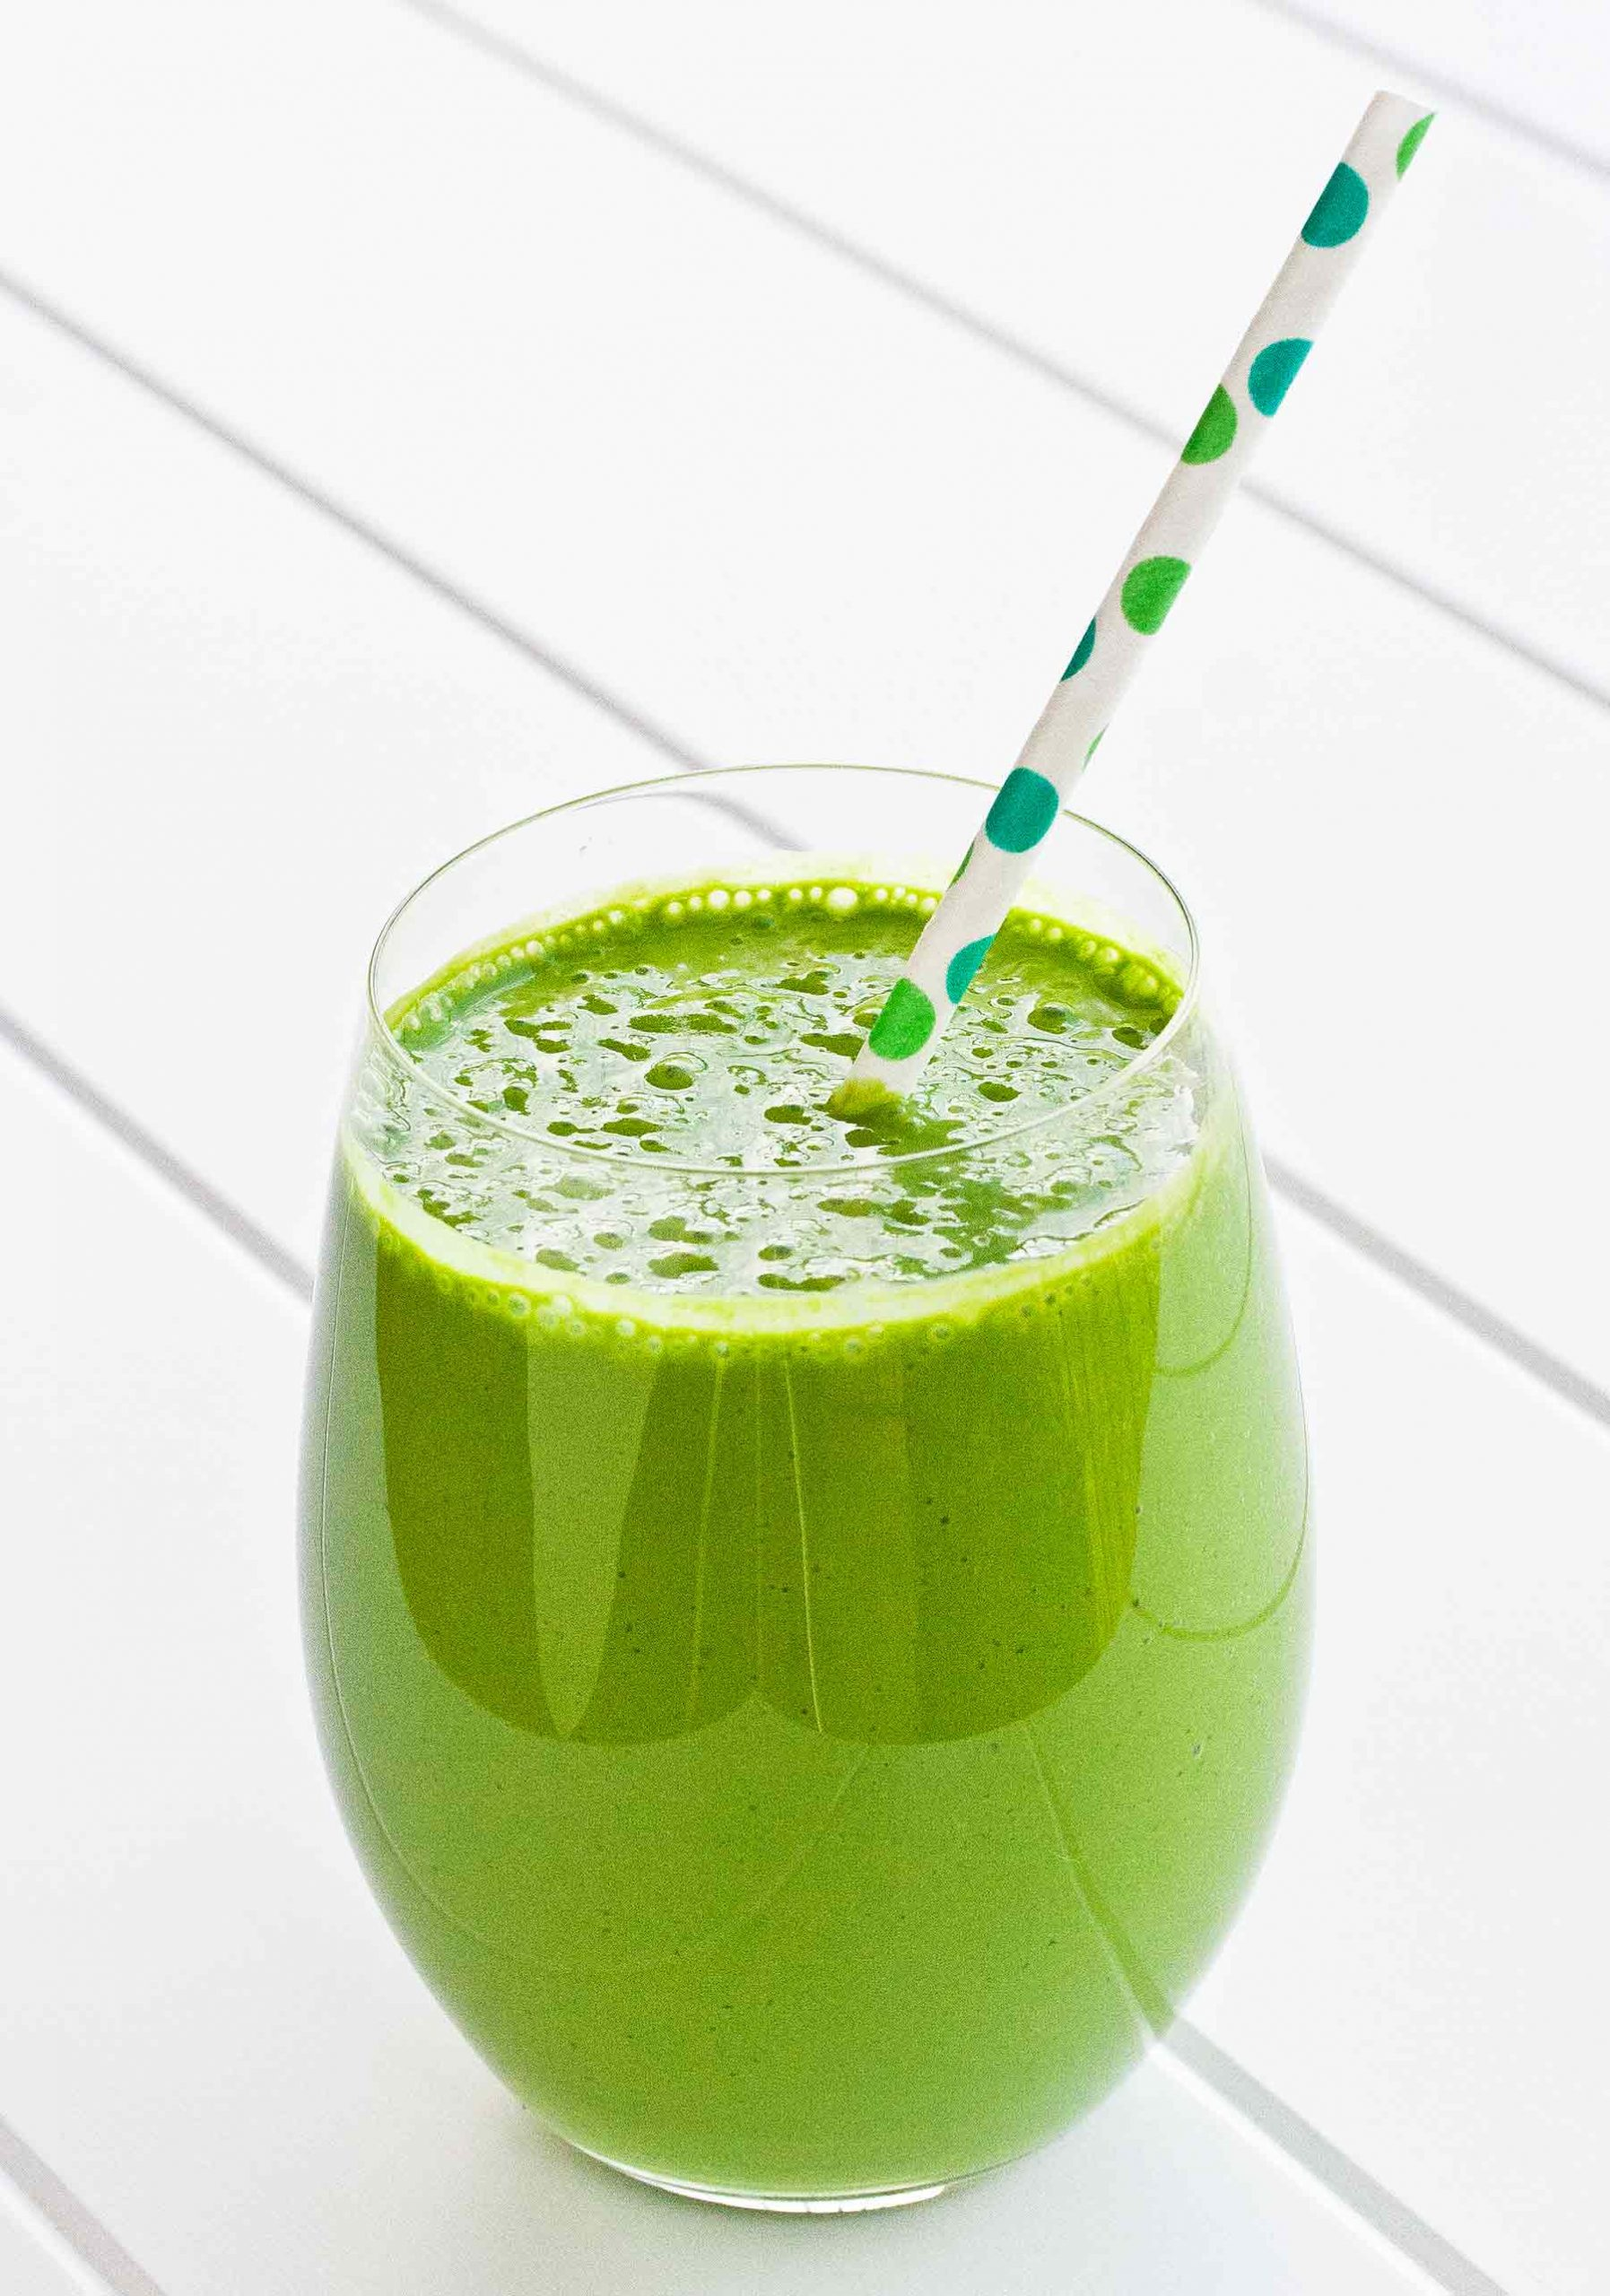 green-smoothie-300x207-2